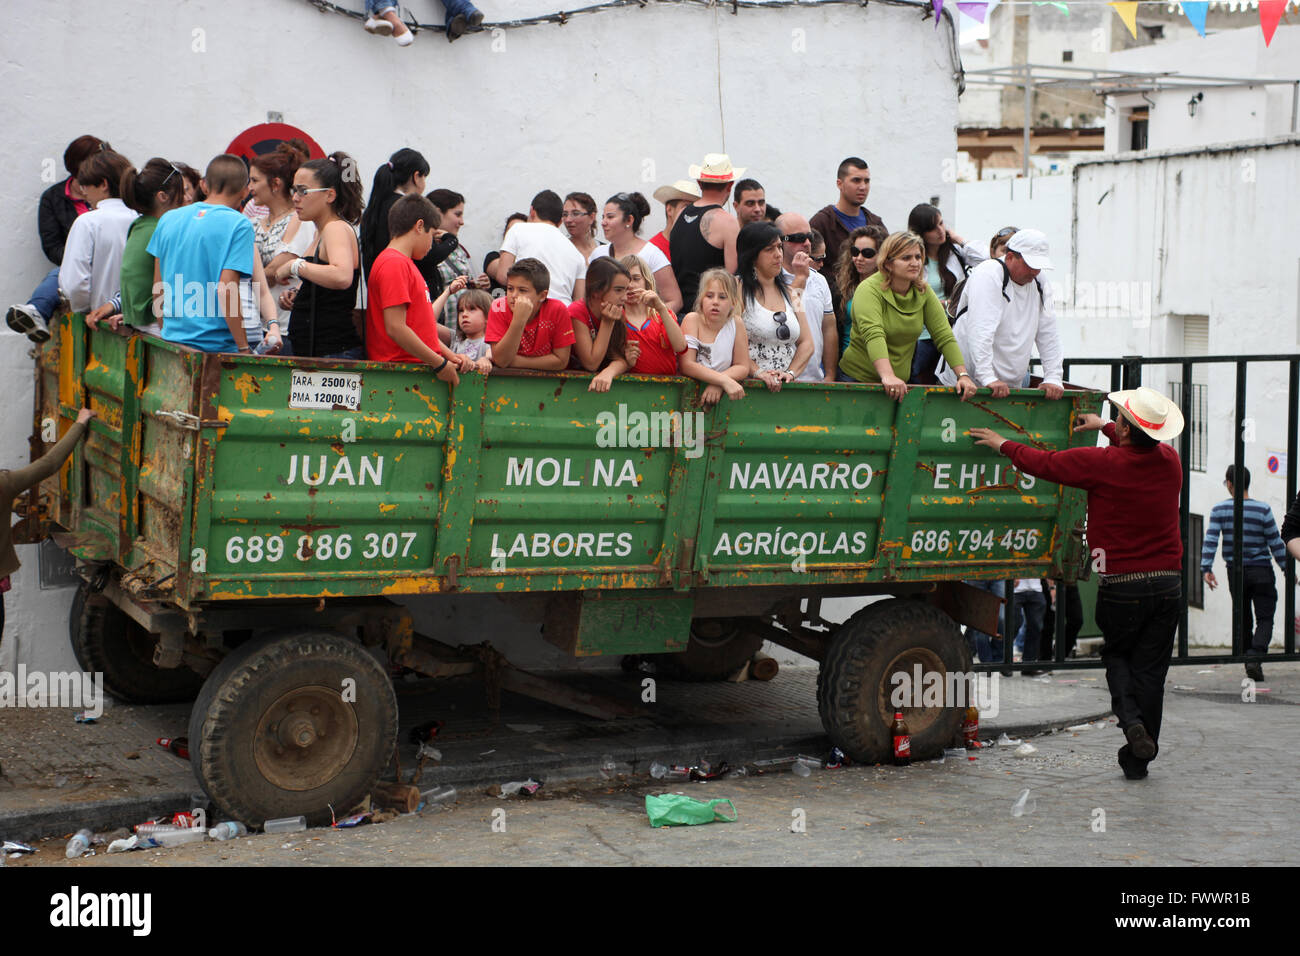 A Man Wearing Cowboy Hat During Easter Party Next To Lorry Full Of People Waiting For Toro Emboli In Vejer De La Frontera C